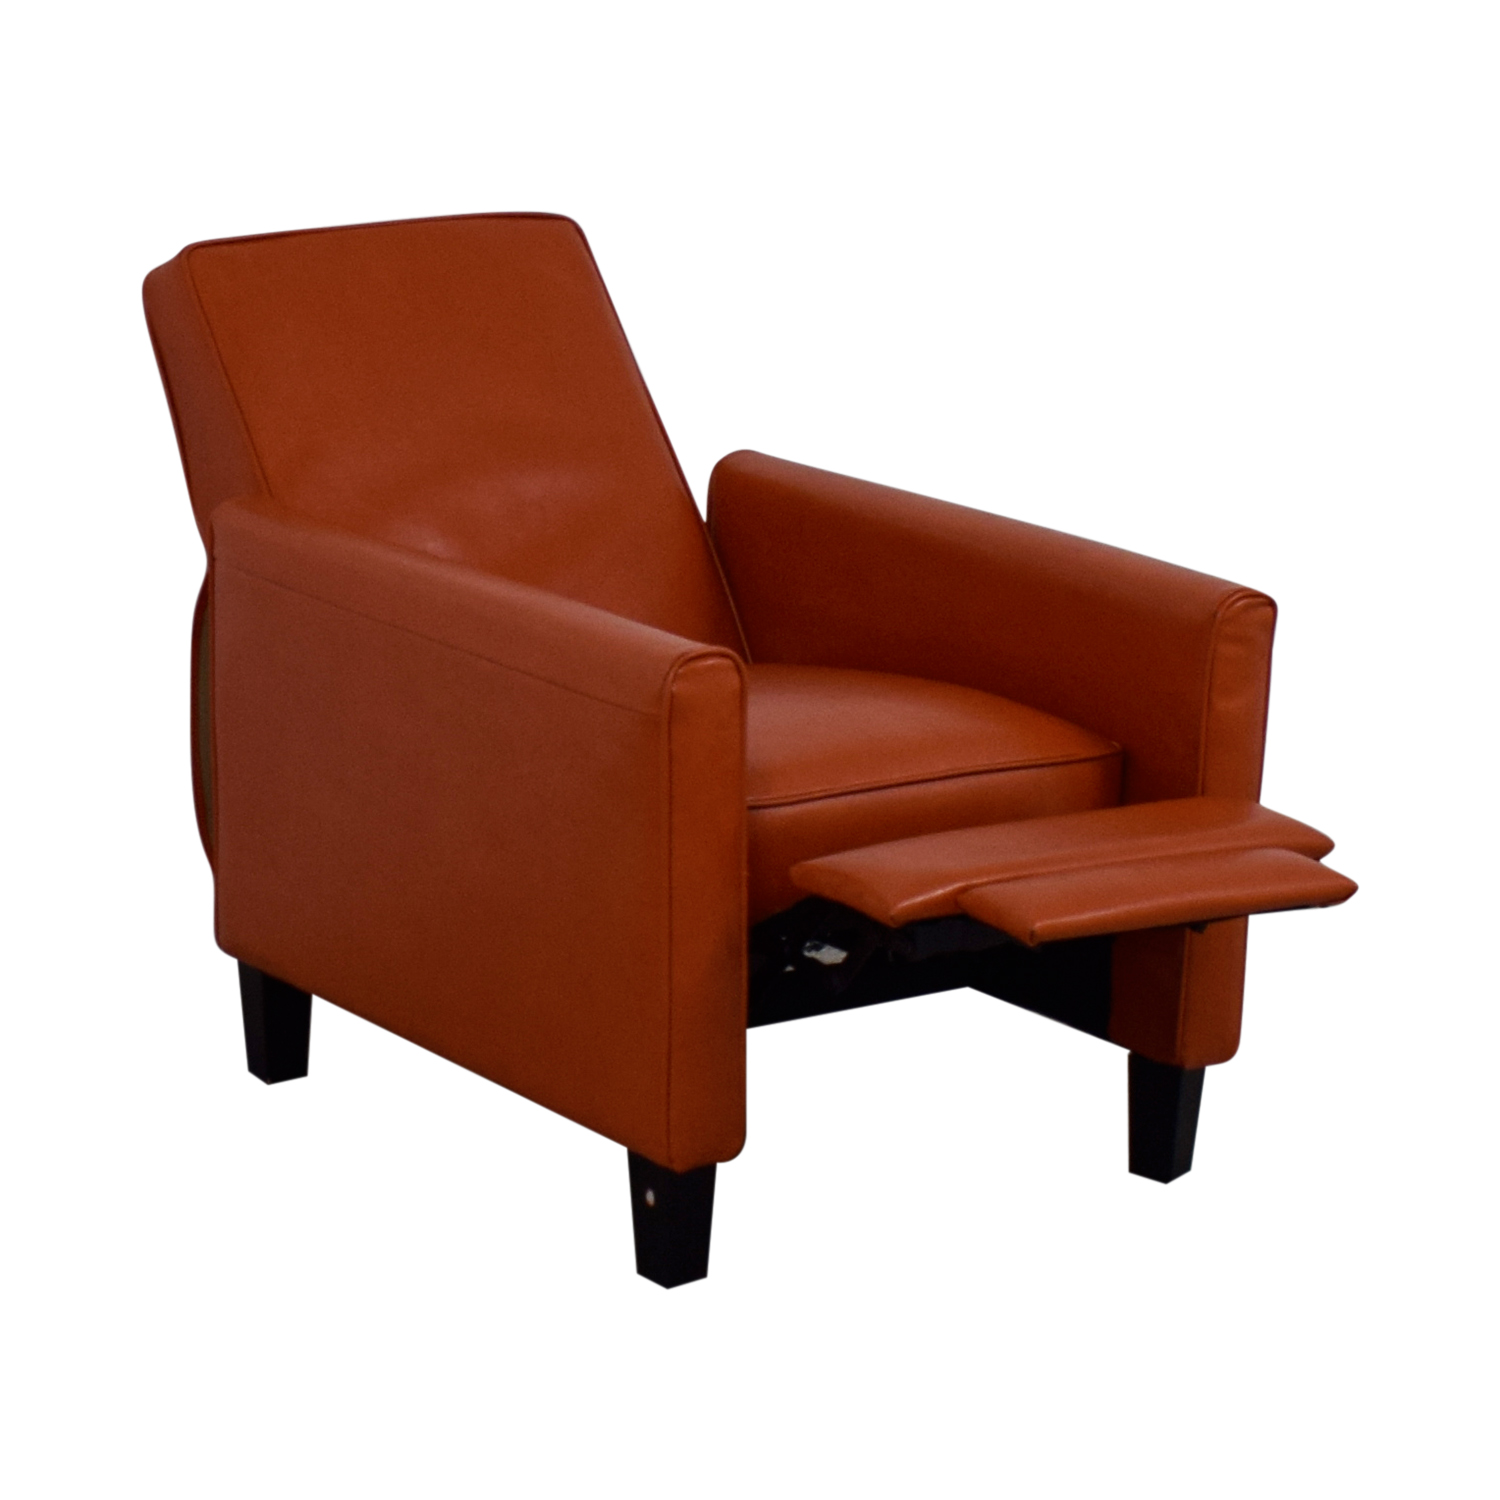 ... Shop Christopher Knight Home Darvis Orange Bonded Leather Recliner Club Chair  Christopher Knight Home ...